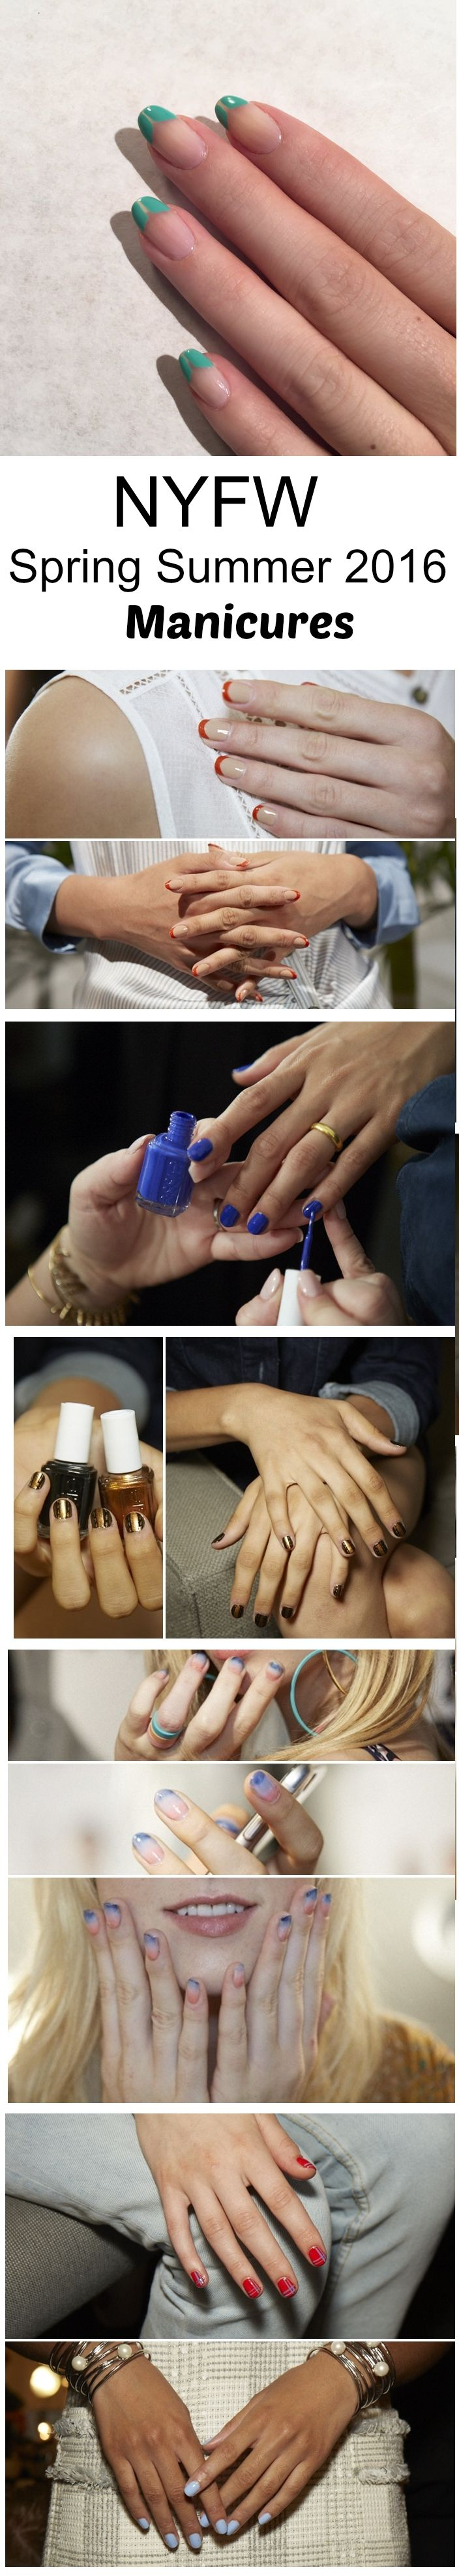 NYFW 2016 Manicures.  Have you seen the looks?